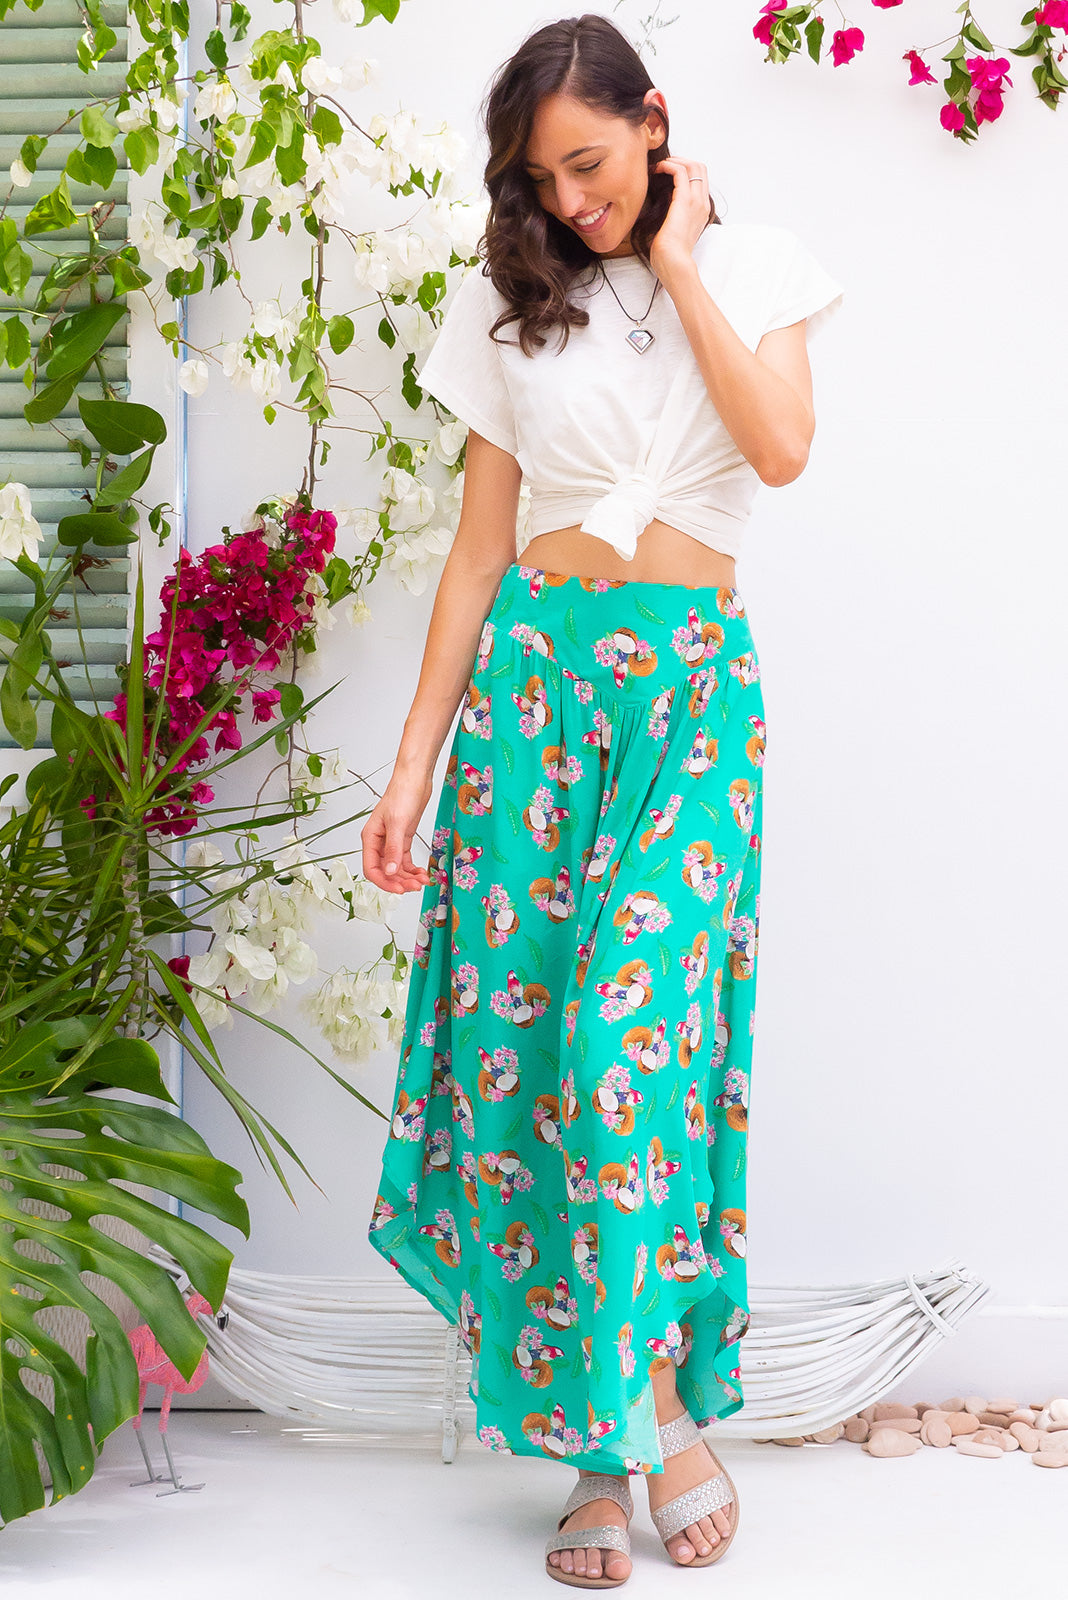 Sails Coconut Green Maxi Skirt with a soft ruched elastic back and pockets in a gorgeous bright aqua sea green with a tropical inspired parrot and coconut print on rayon fabric